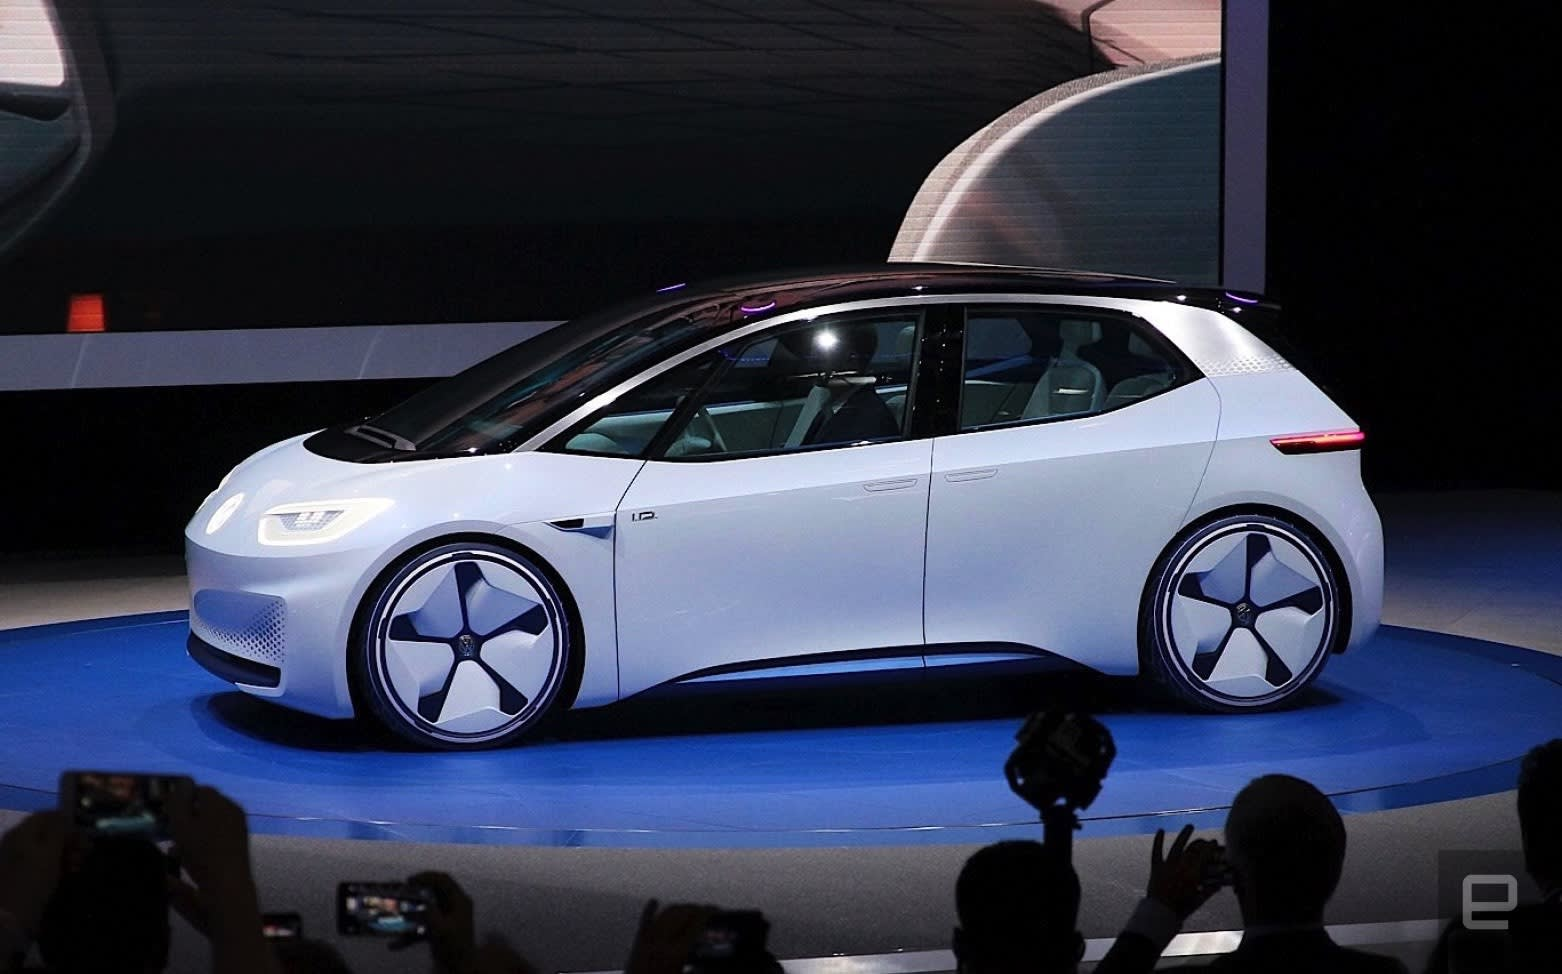 VW May Open Its Electric Car Platform To Competitors